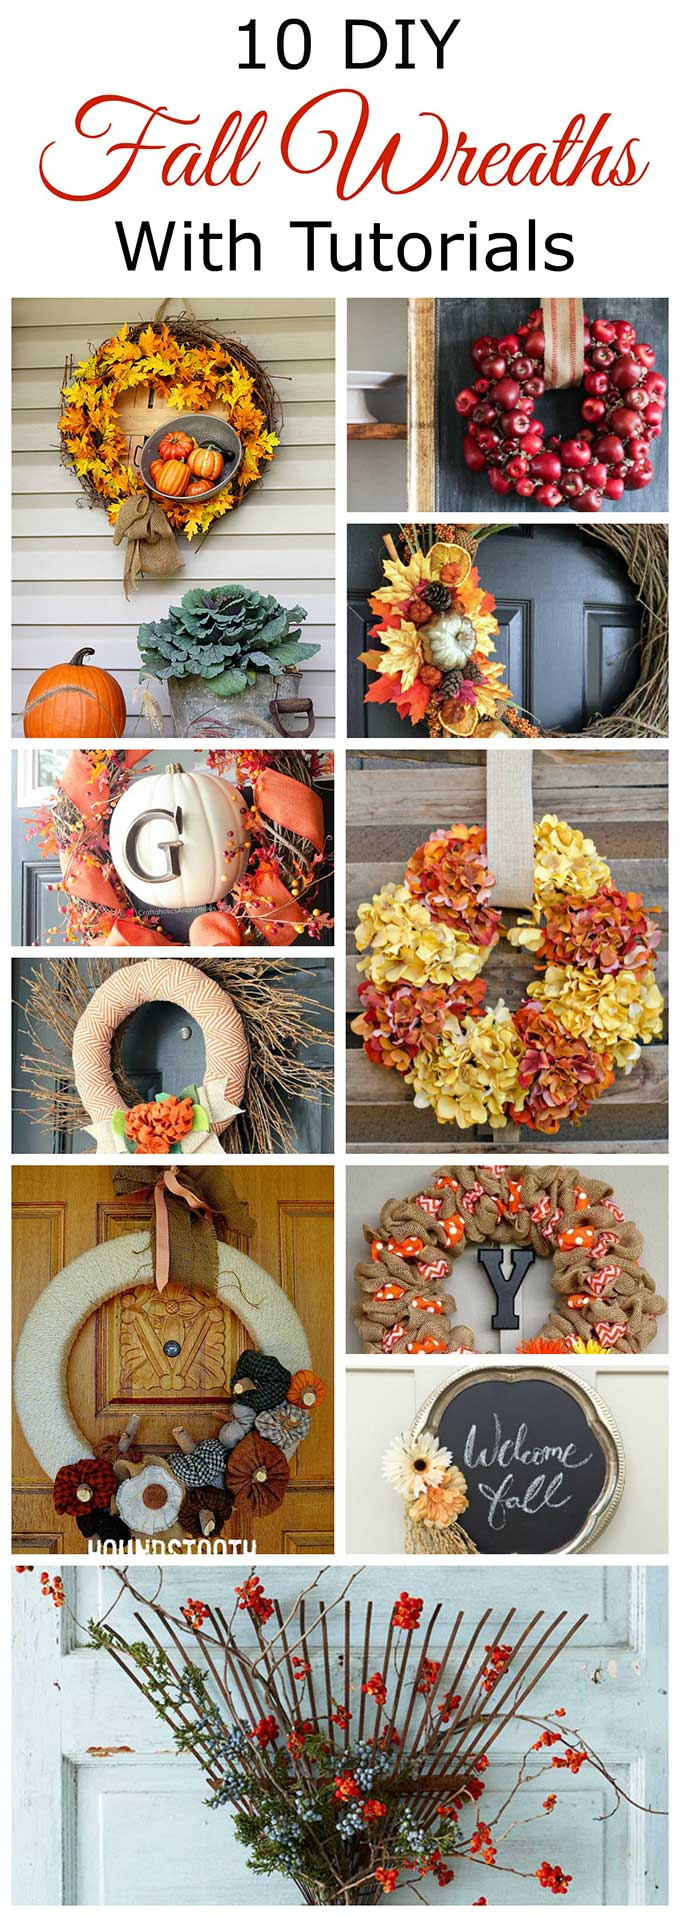 Celebrate autumn with one of these 10 DIY fall wreaths for your front door. Including tutorials and lots of great fall inspiration! #fall #diy #wreath #autumn